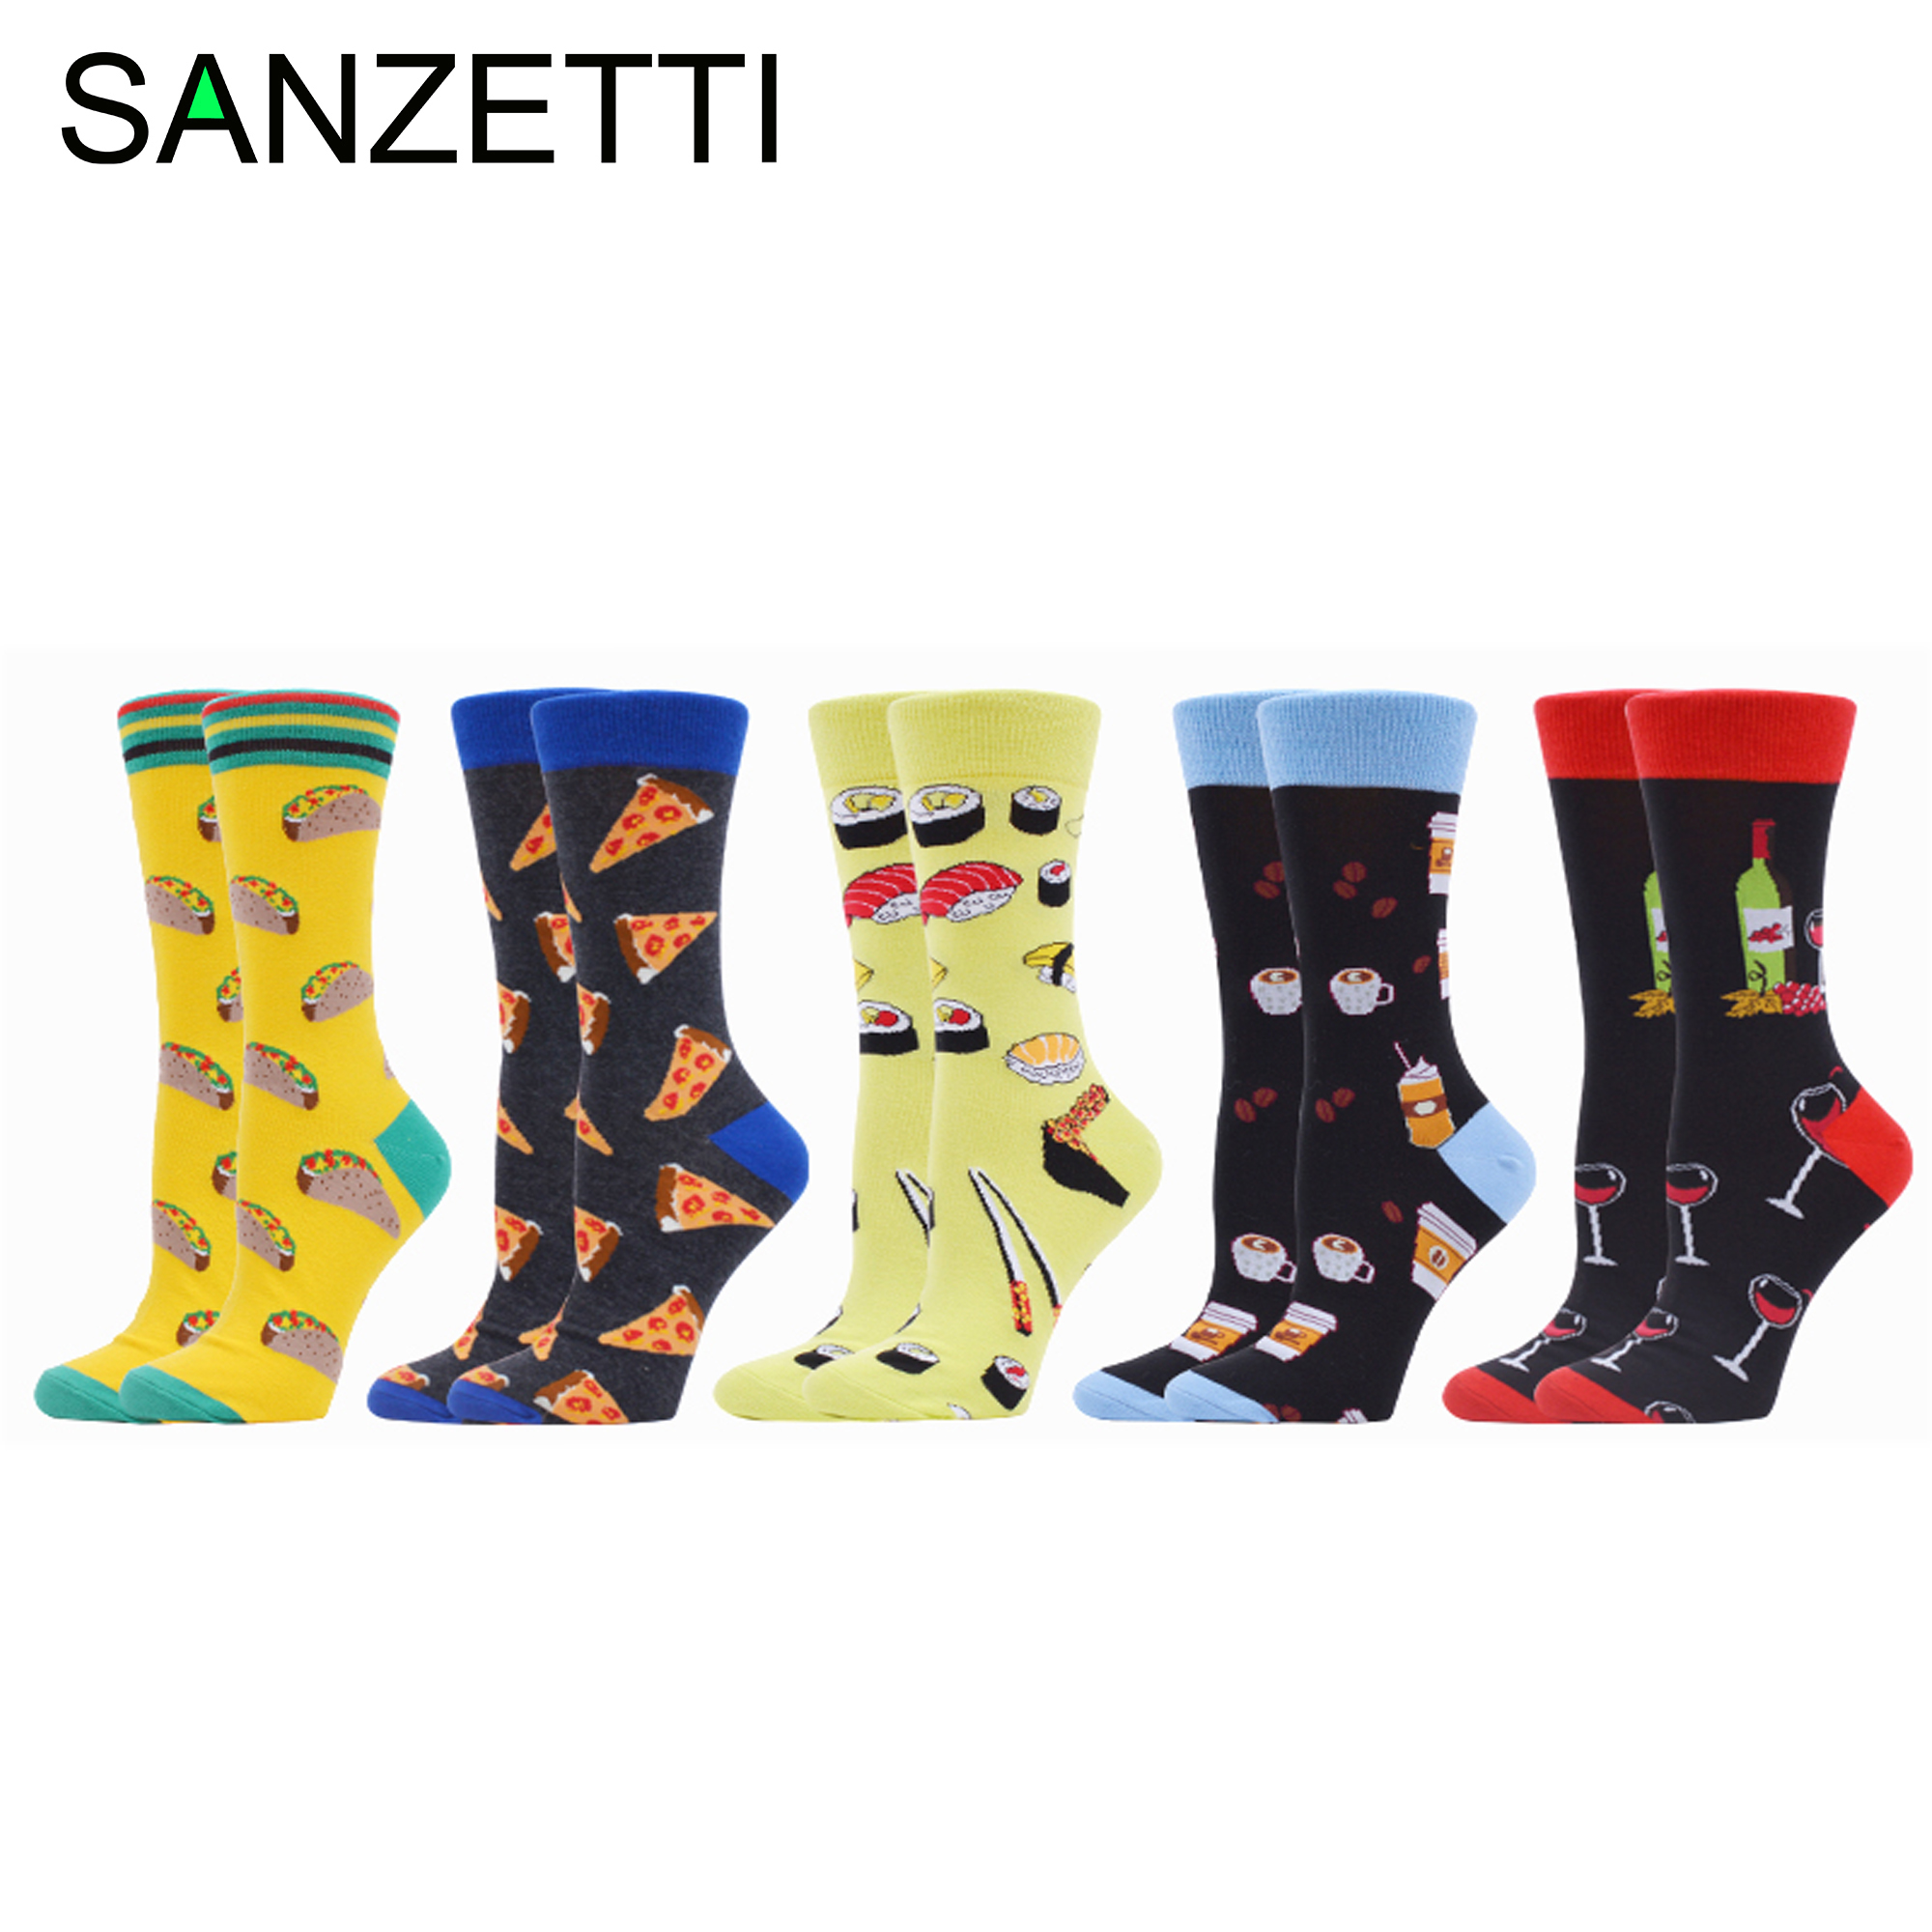 SANZETTI 5 Pairs 2020 Women Combed Cotton Socks Hot Dog Happy Lovely Colorful Harajuku Pizza Wedding Funny Dress Camping Socks